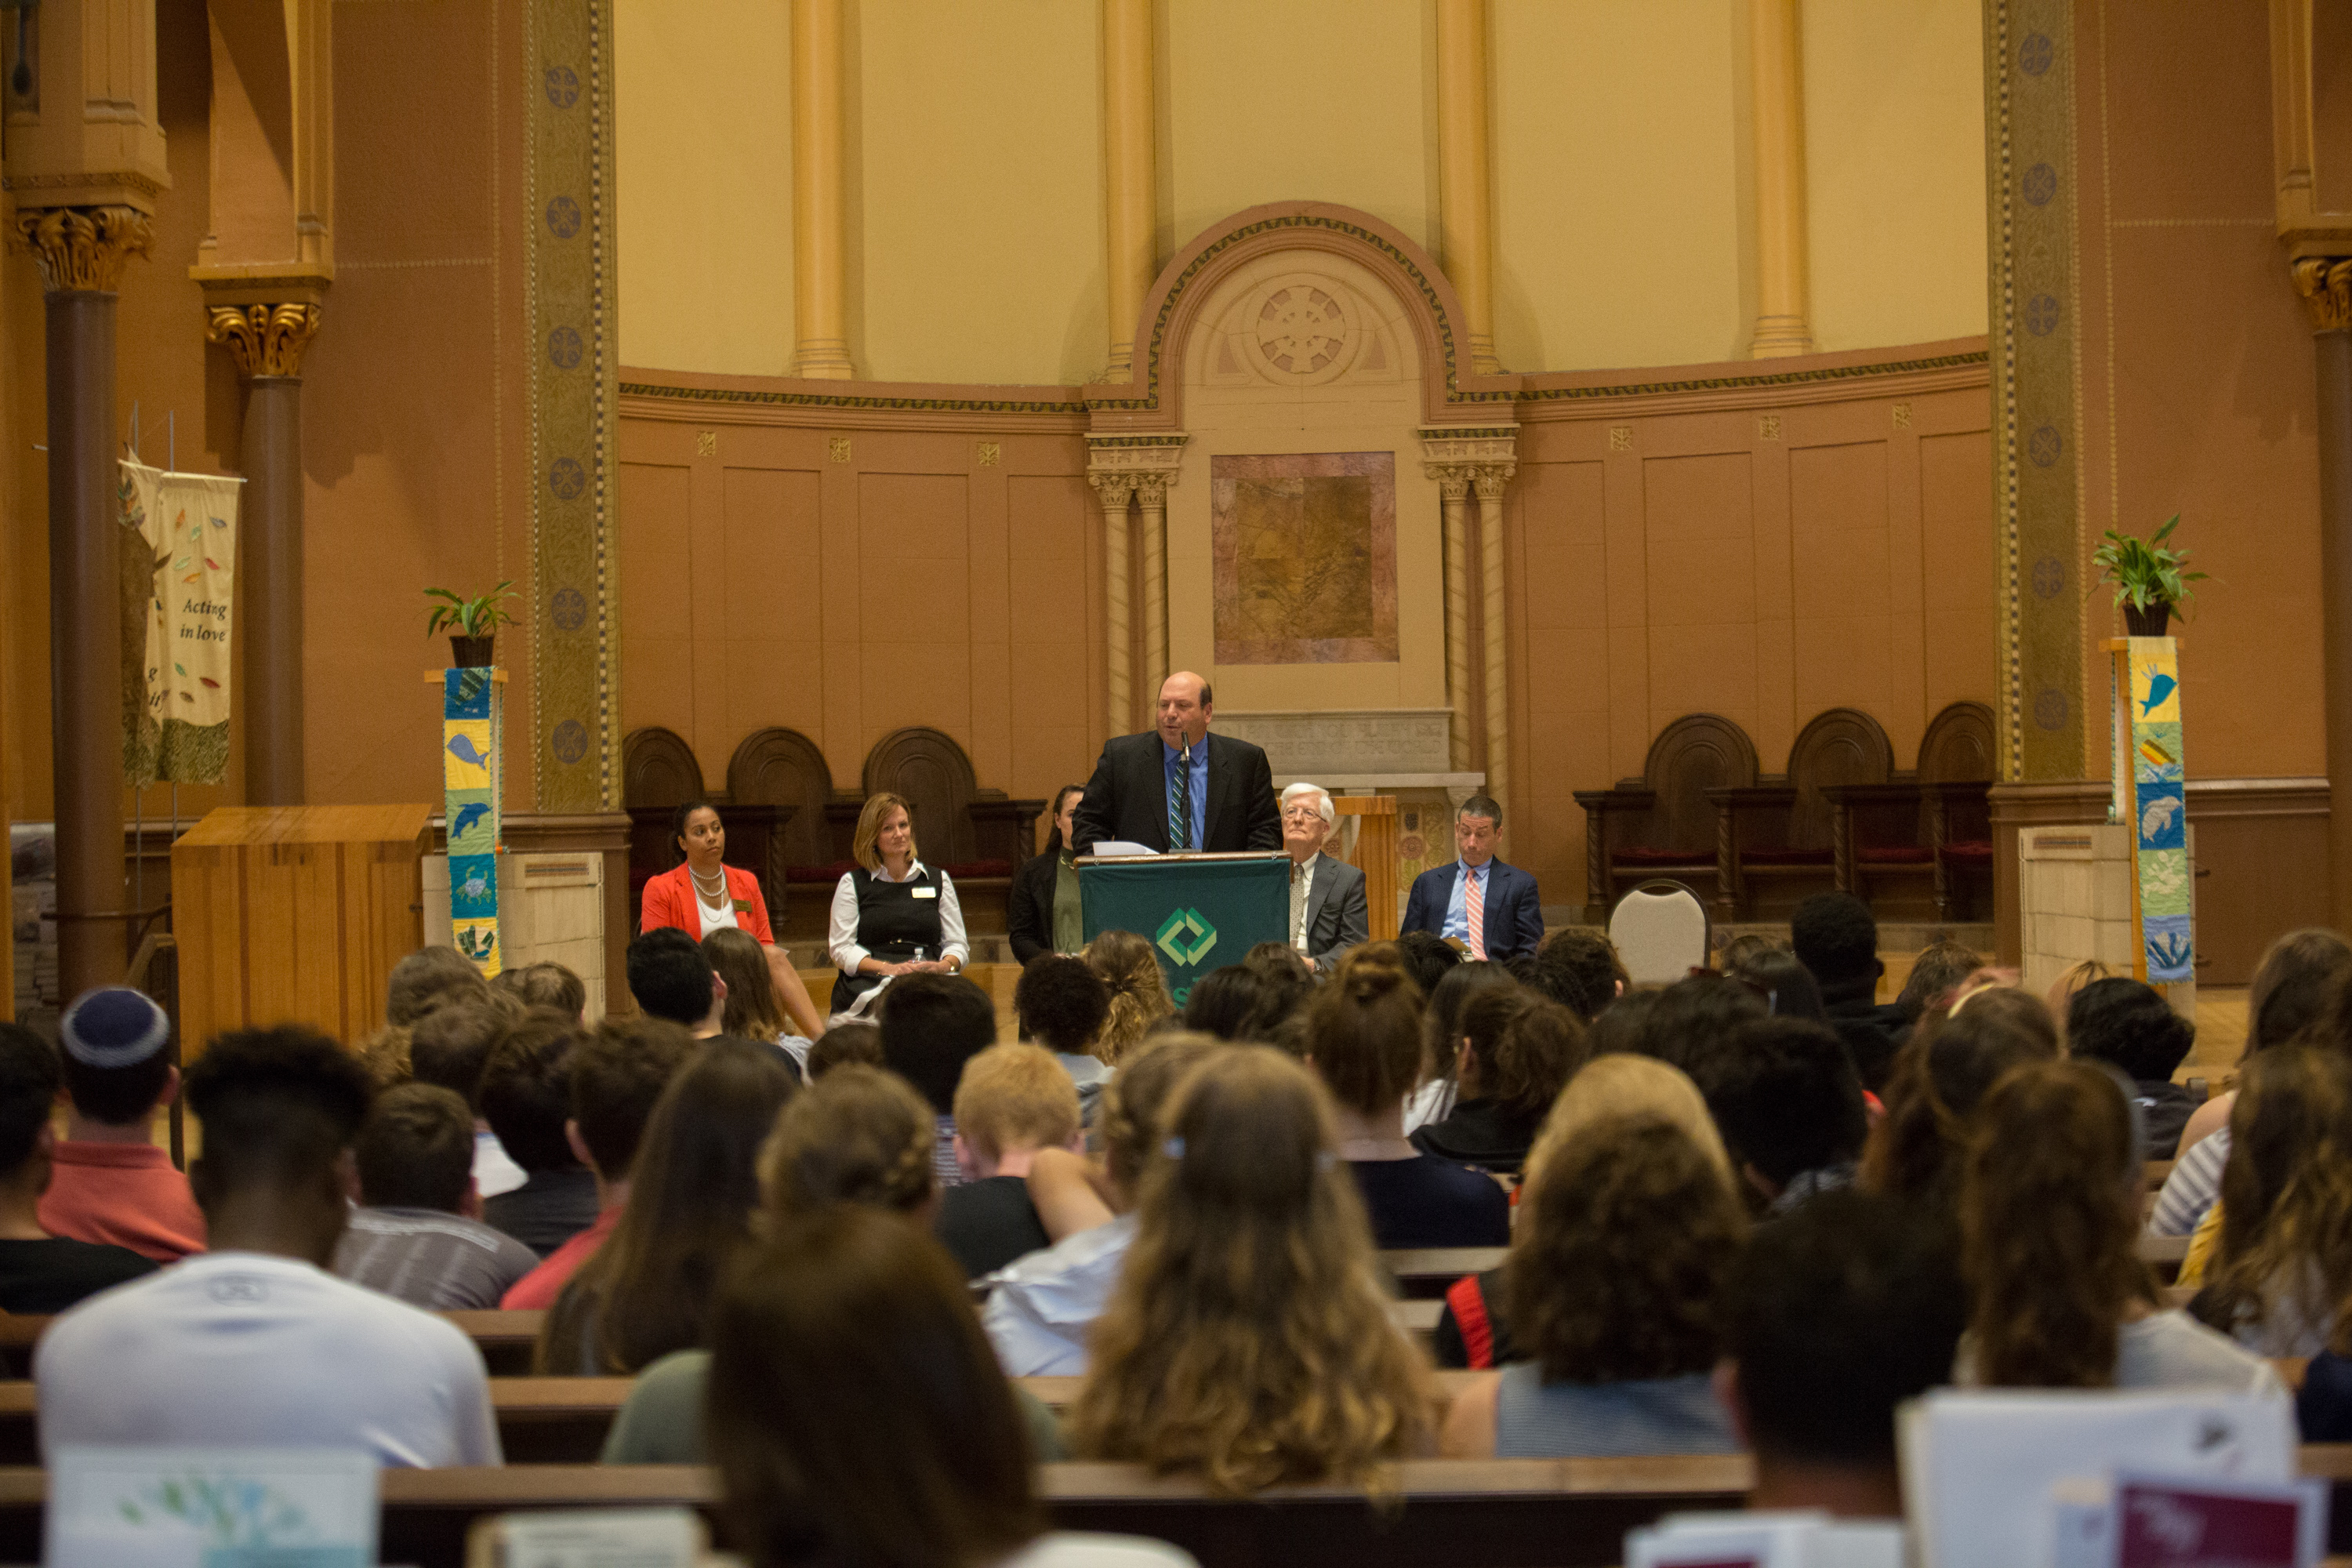 President Weiss addresses the crowd gatherd at convocation.